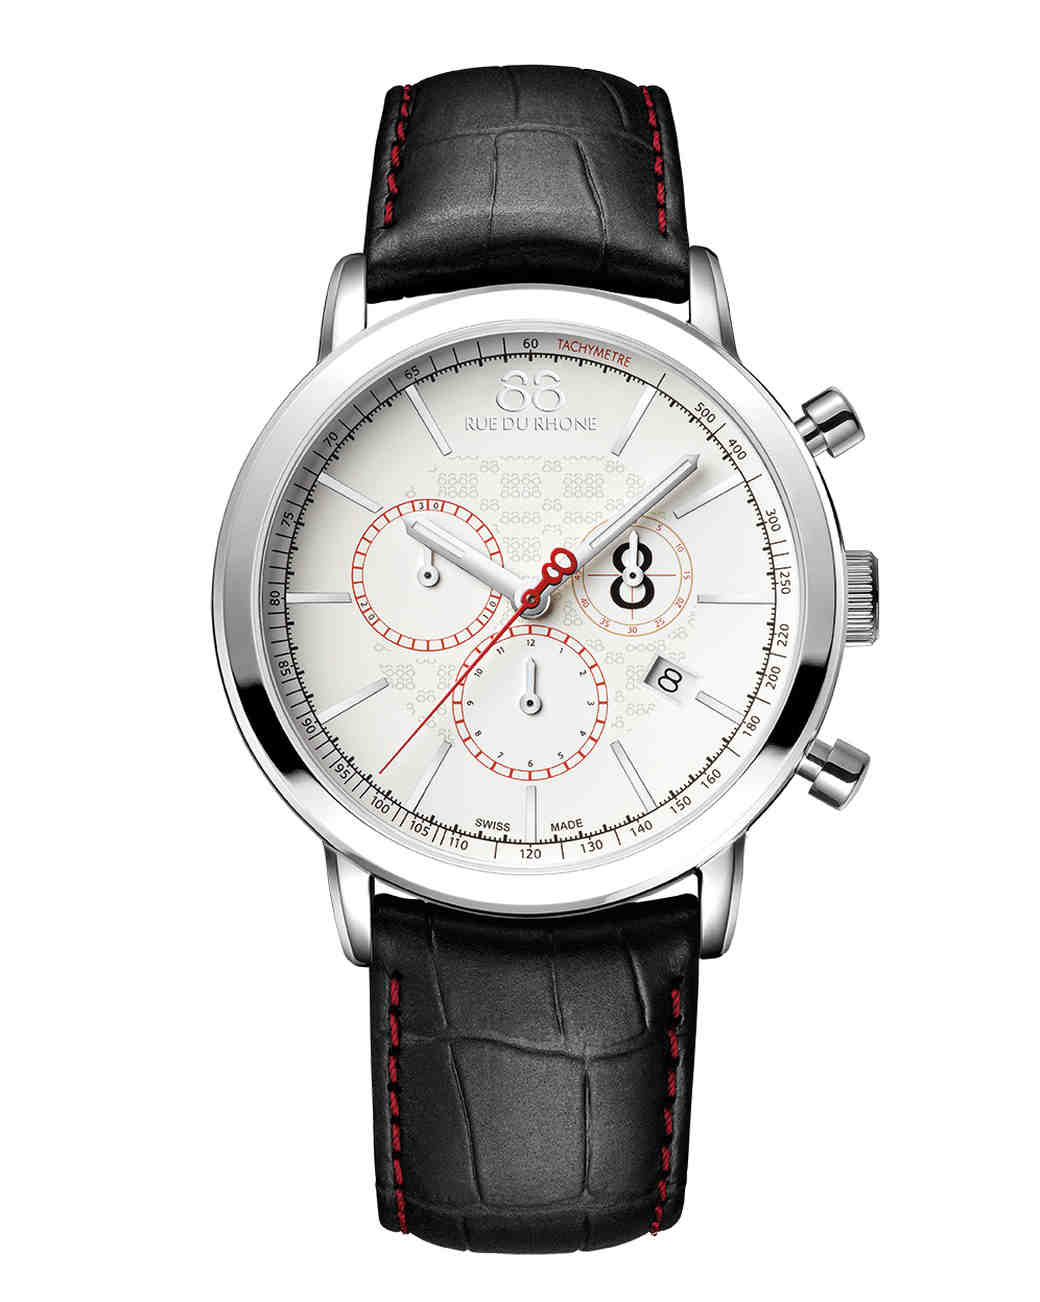 88 Rue du Rhone Broadway Watch